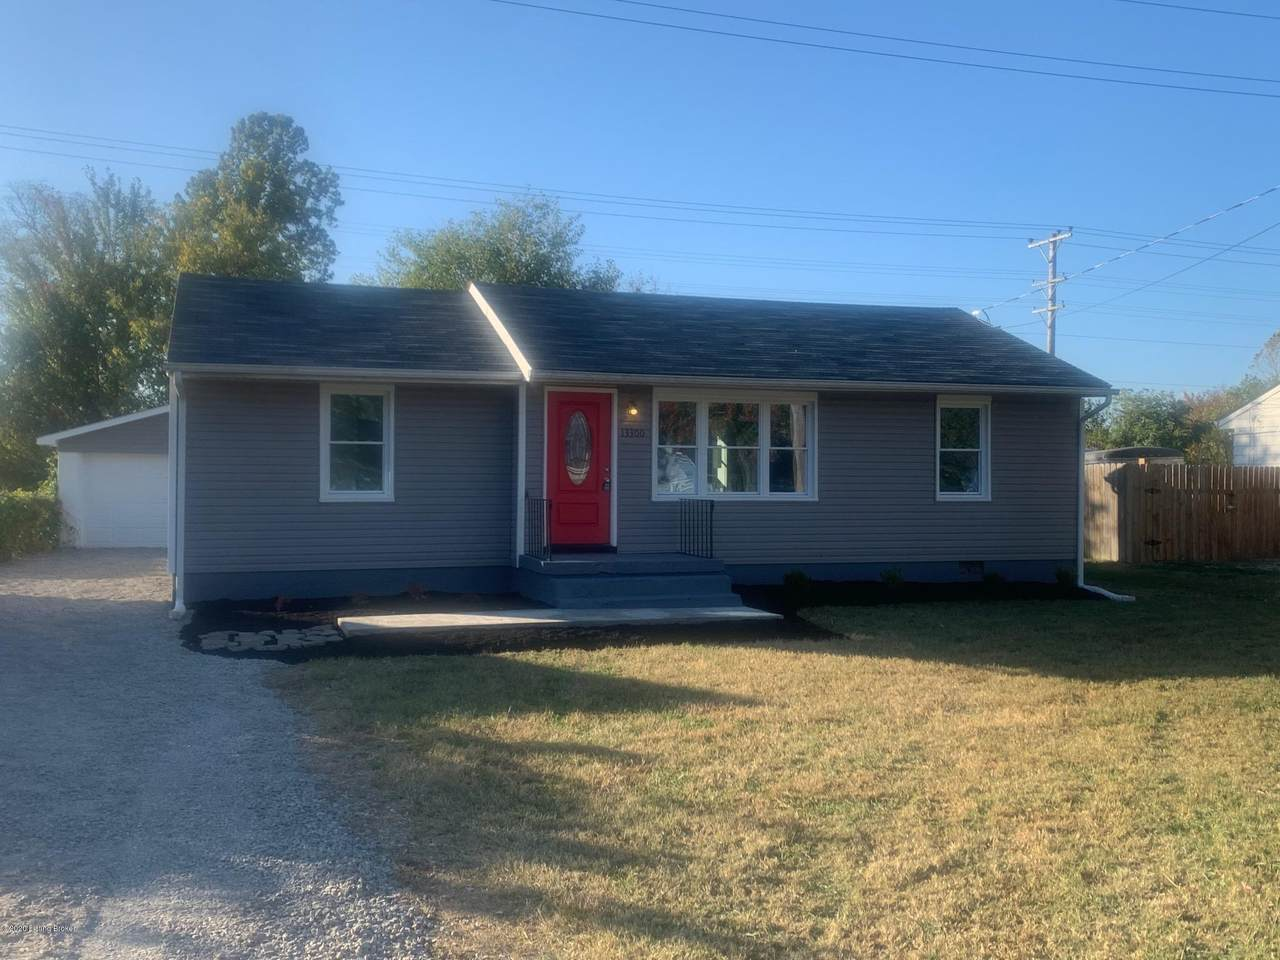 13300 Ashlawn Dr - Photo 1